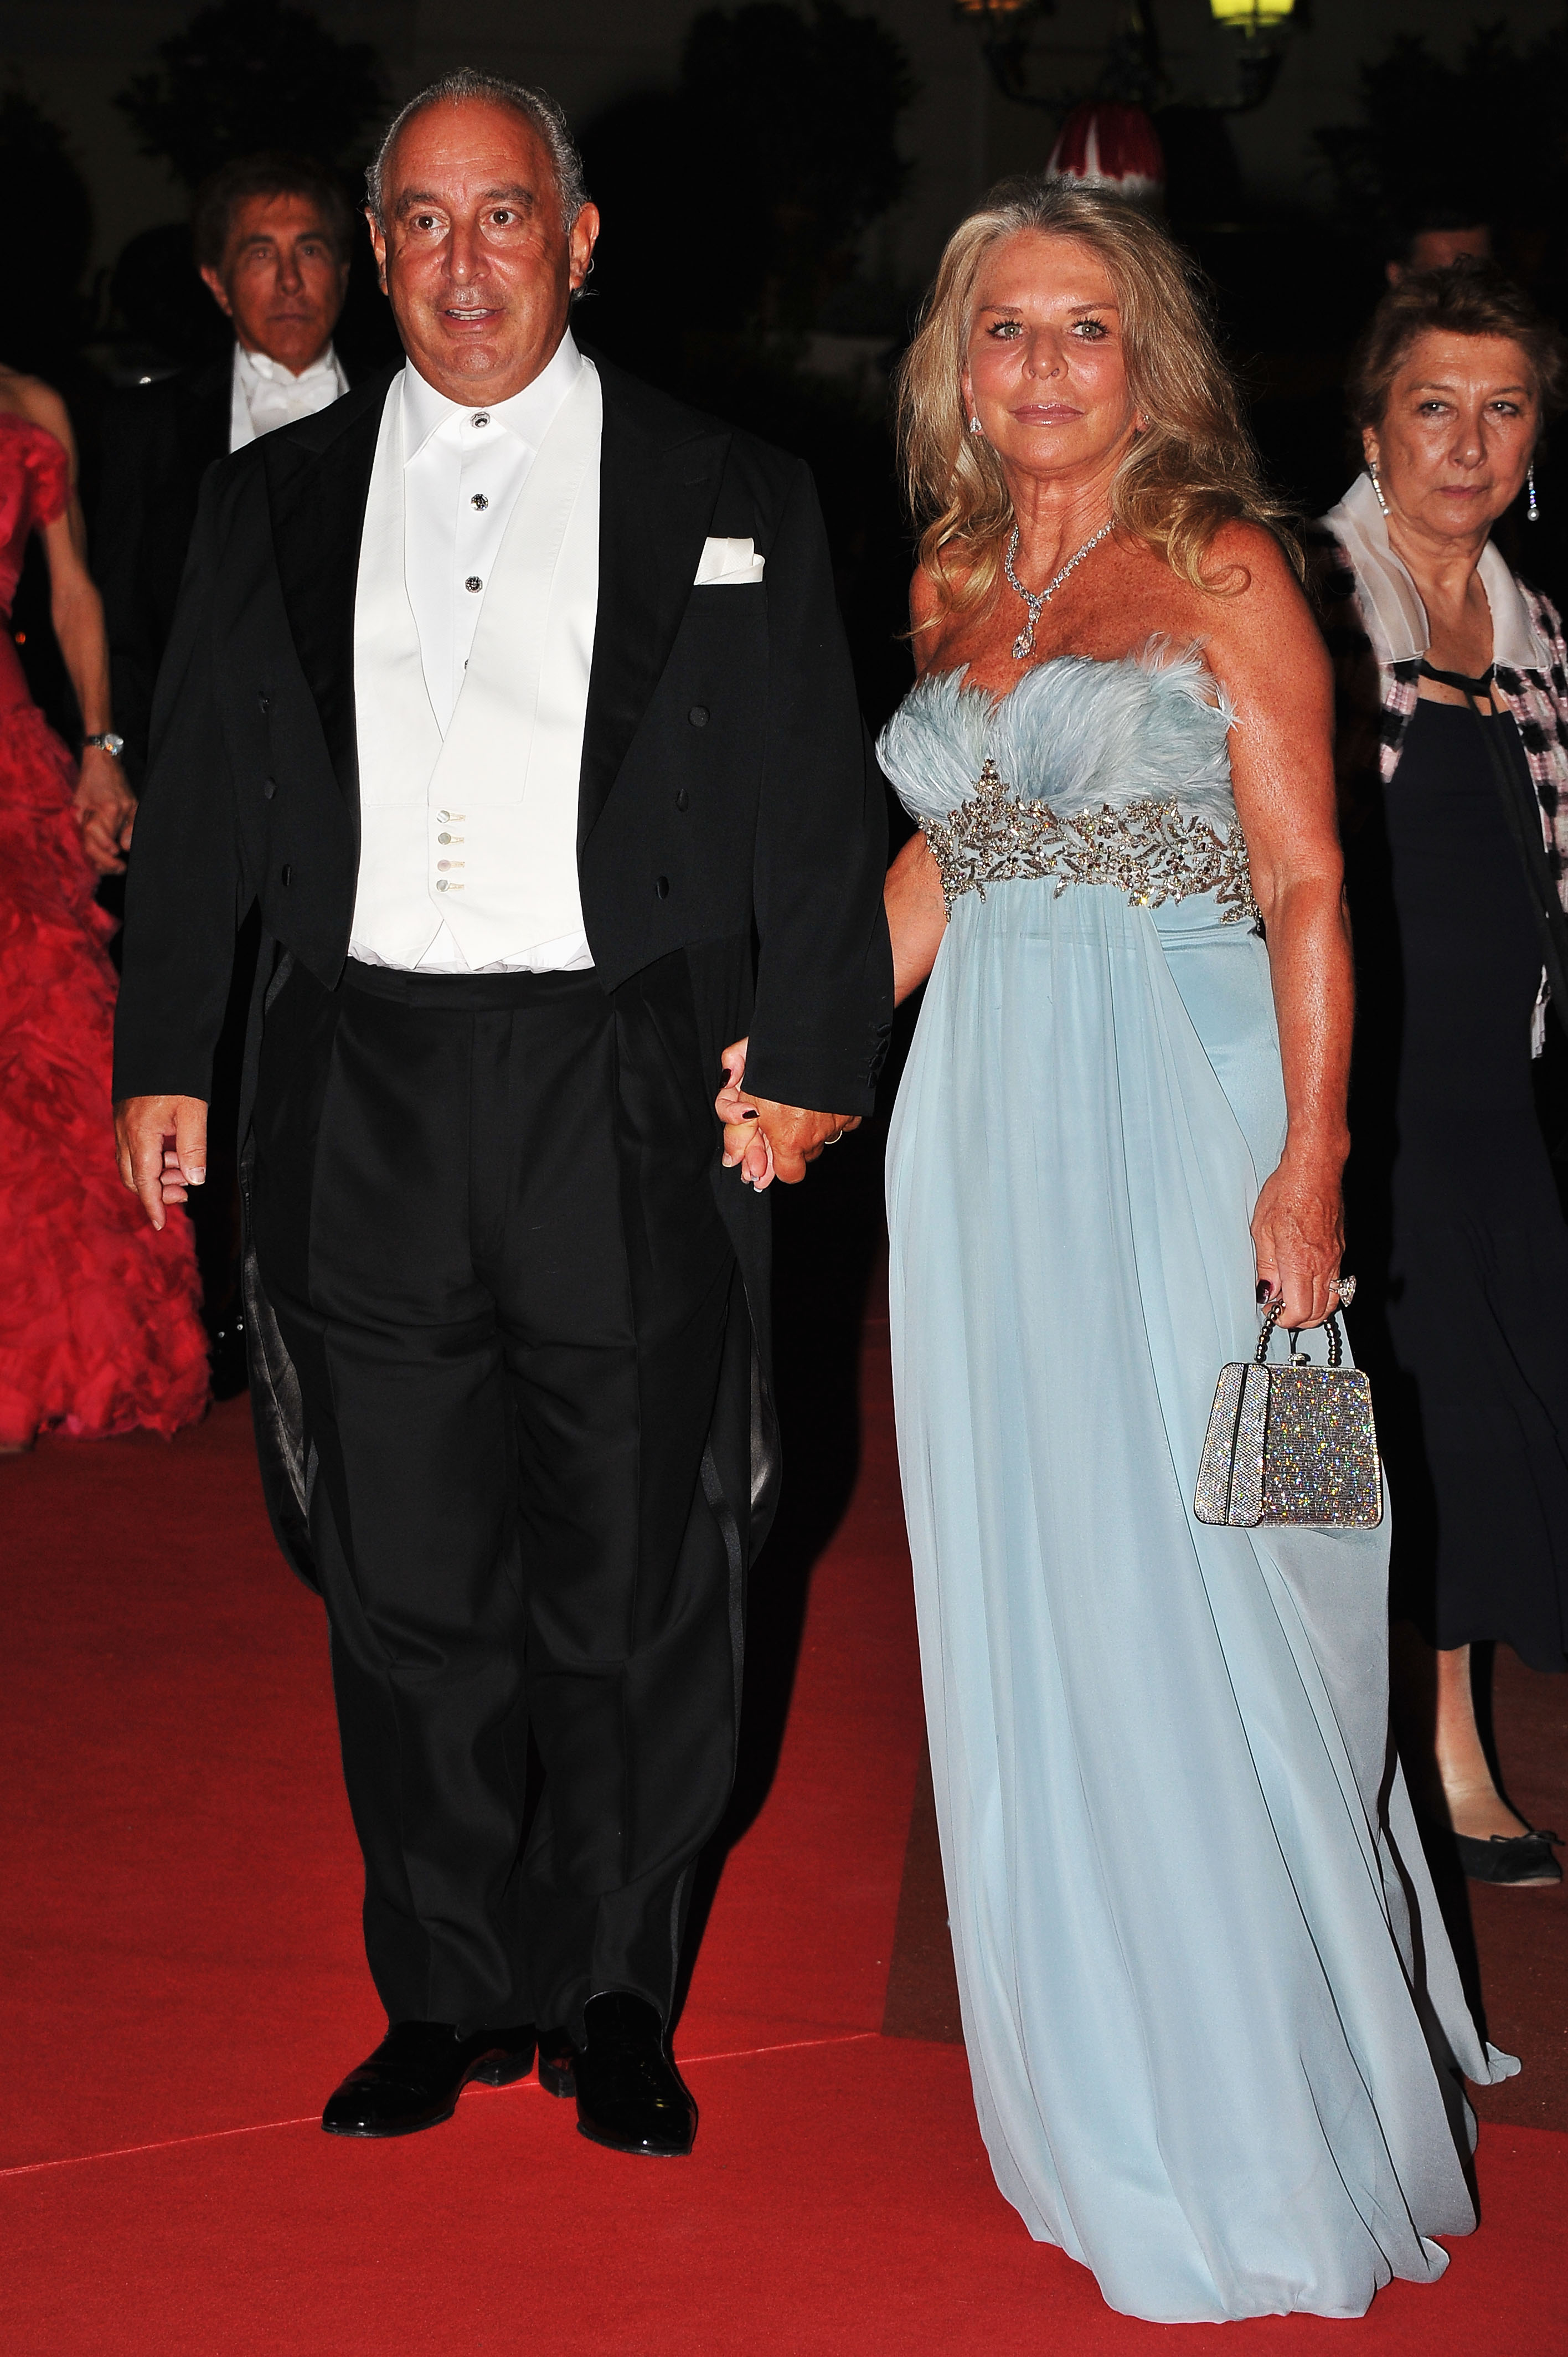 Philip Green and Tina Green attended a dinner at Opera terraces after the religious wedding ceremony of Prince Albert II of Monaco and Princess Charlene of Monaco.